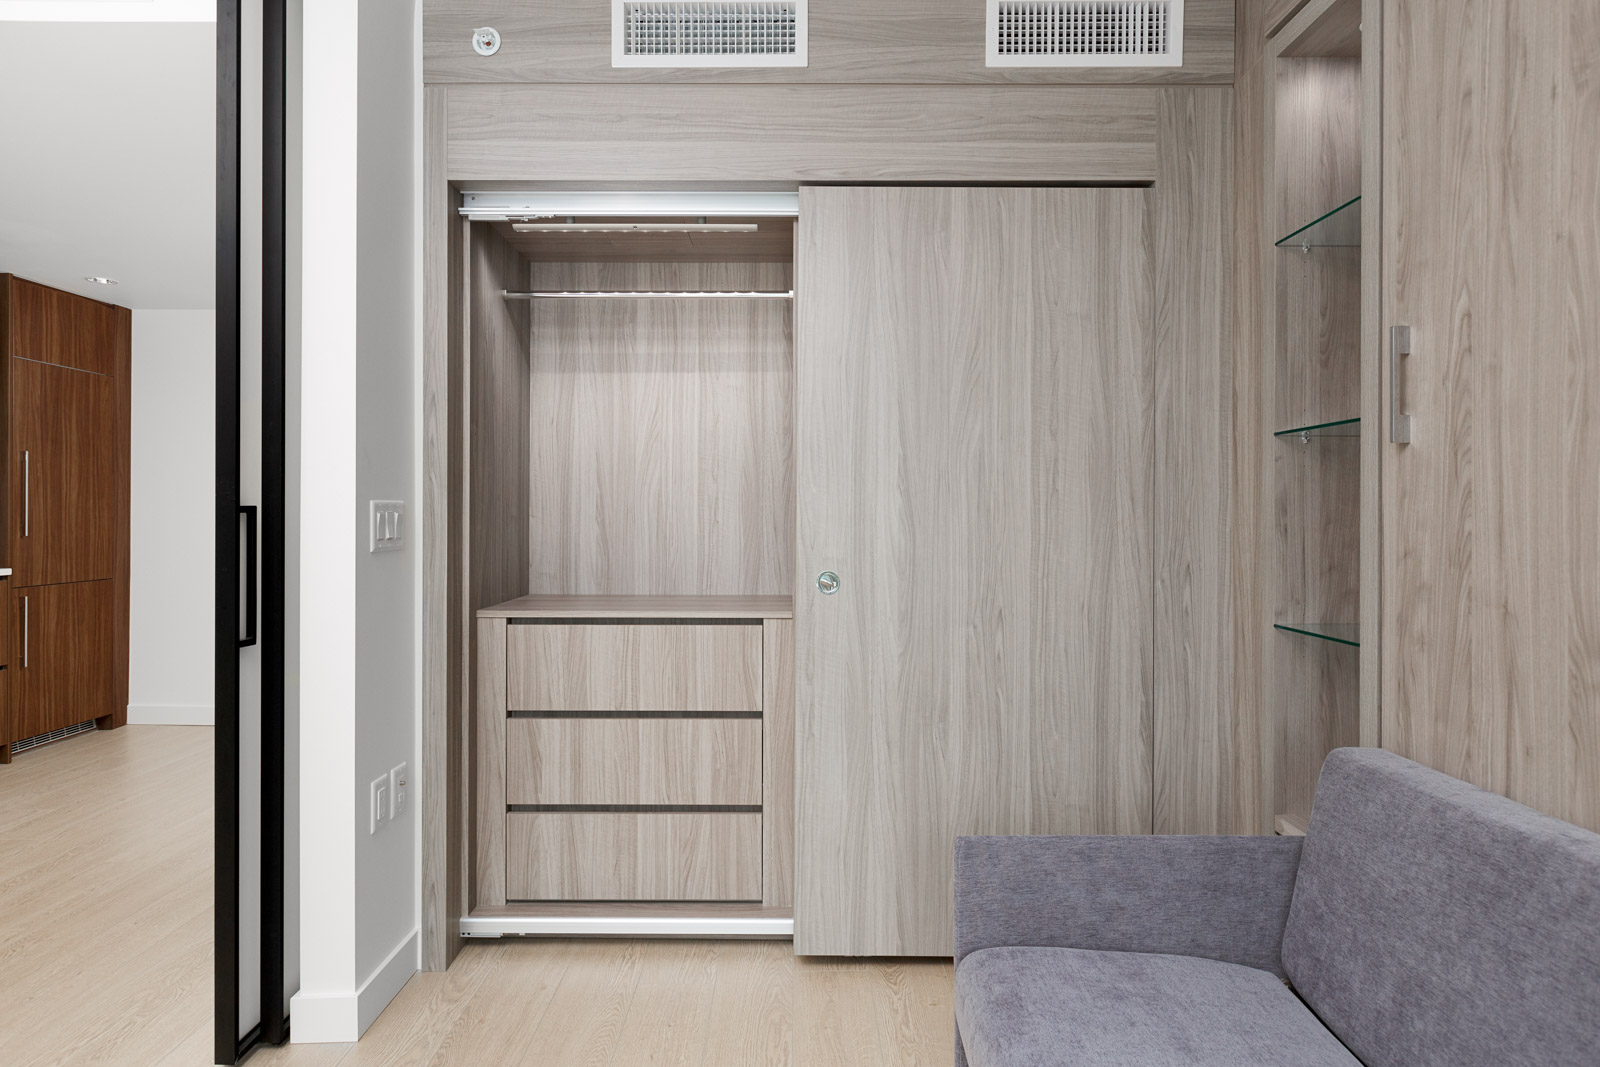 bedroom closet with shelving in arc rental condo unit